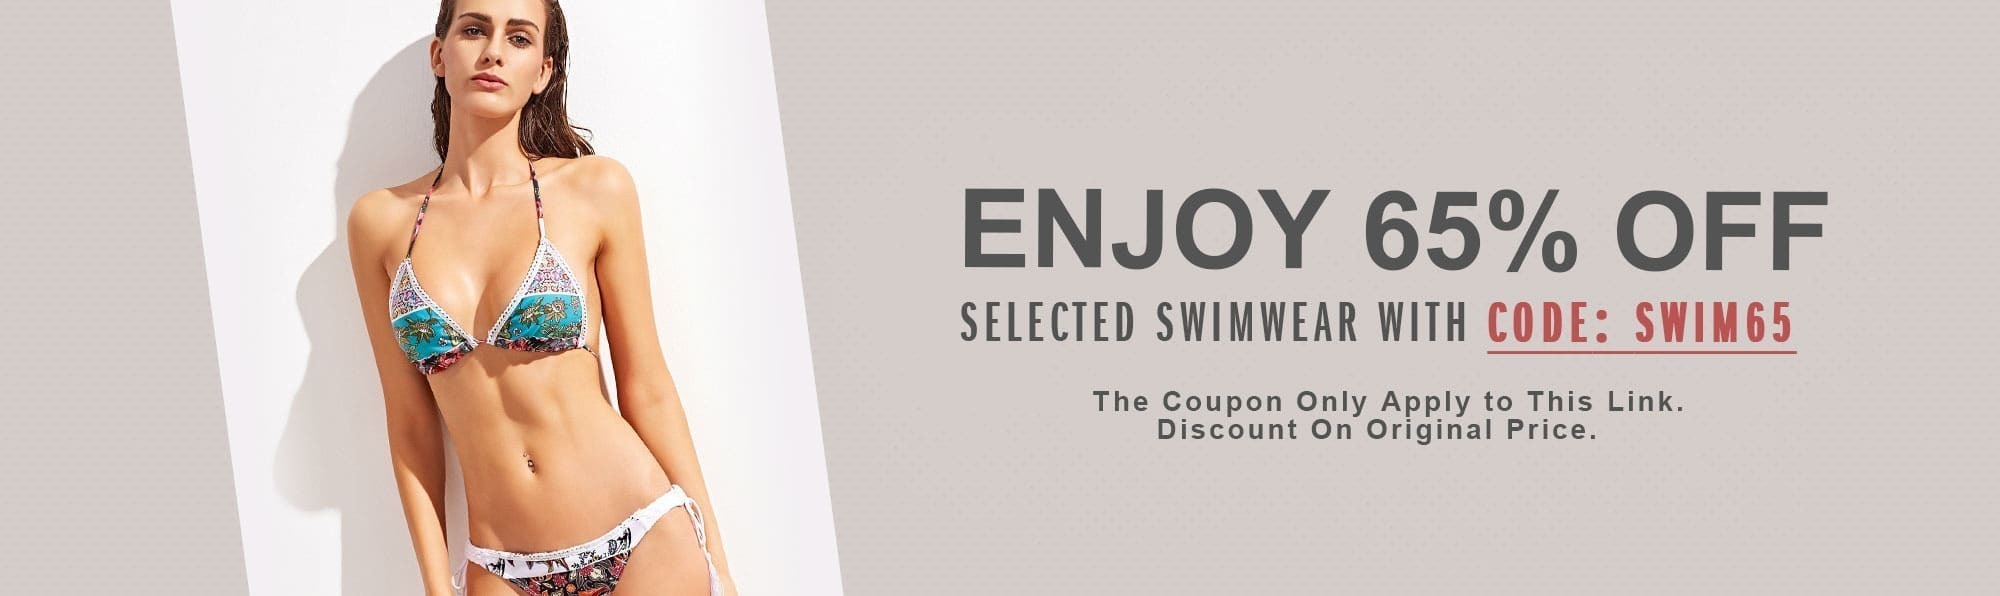 Swimwear Up To 65% Off